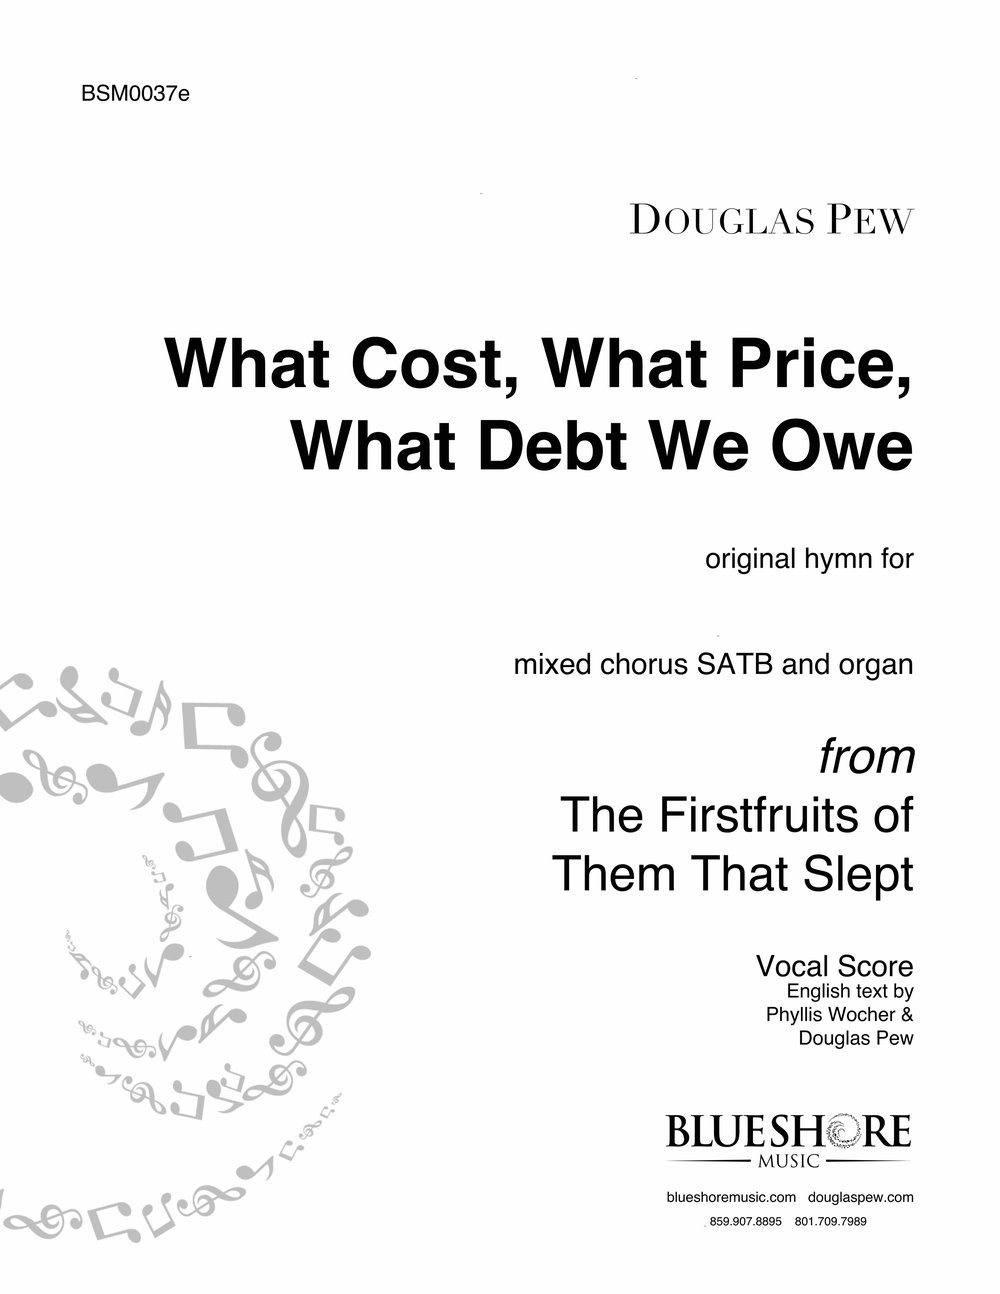 What Cost, What Price, What Debt We Owe A Hymn for SATB and organ. Text by Phyllis Wocher.